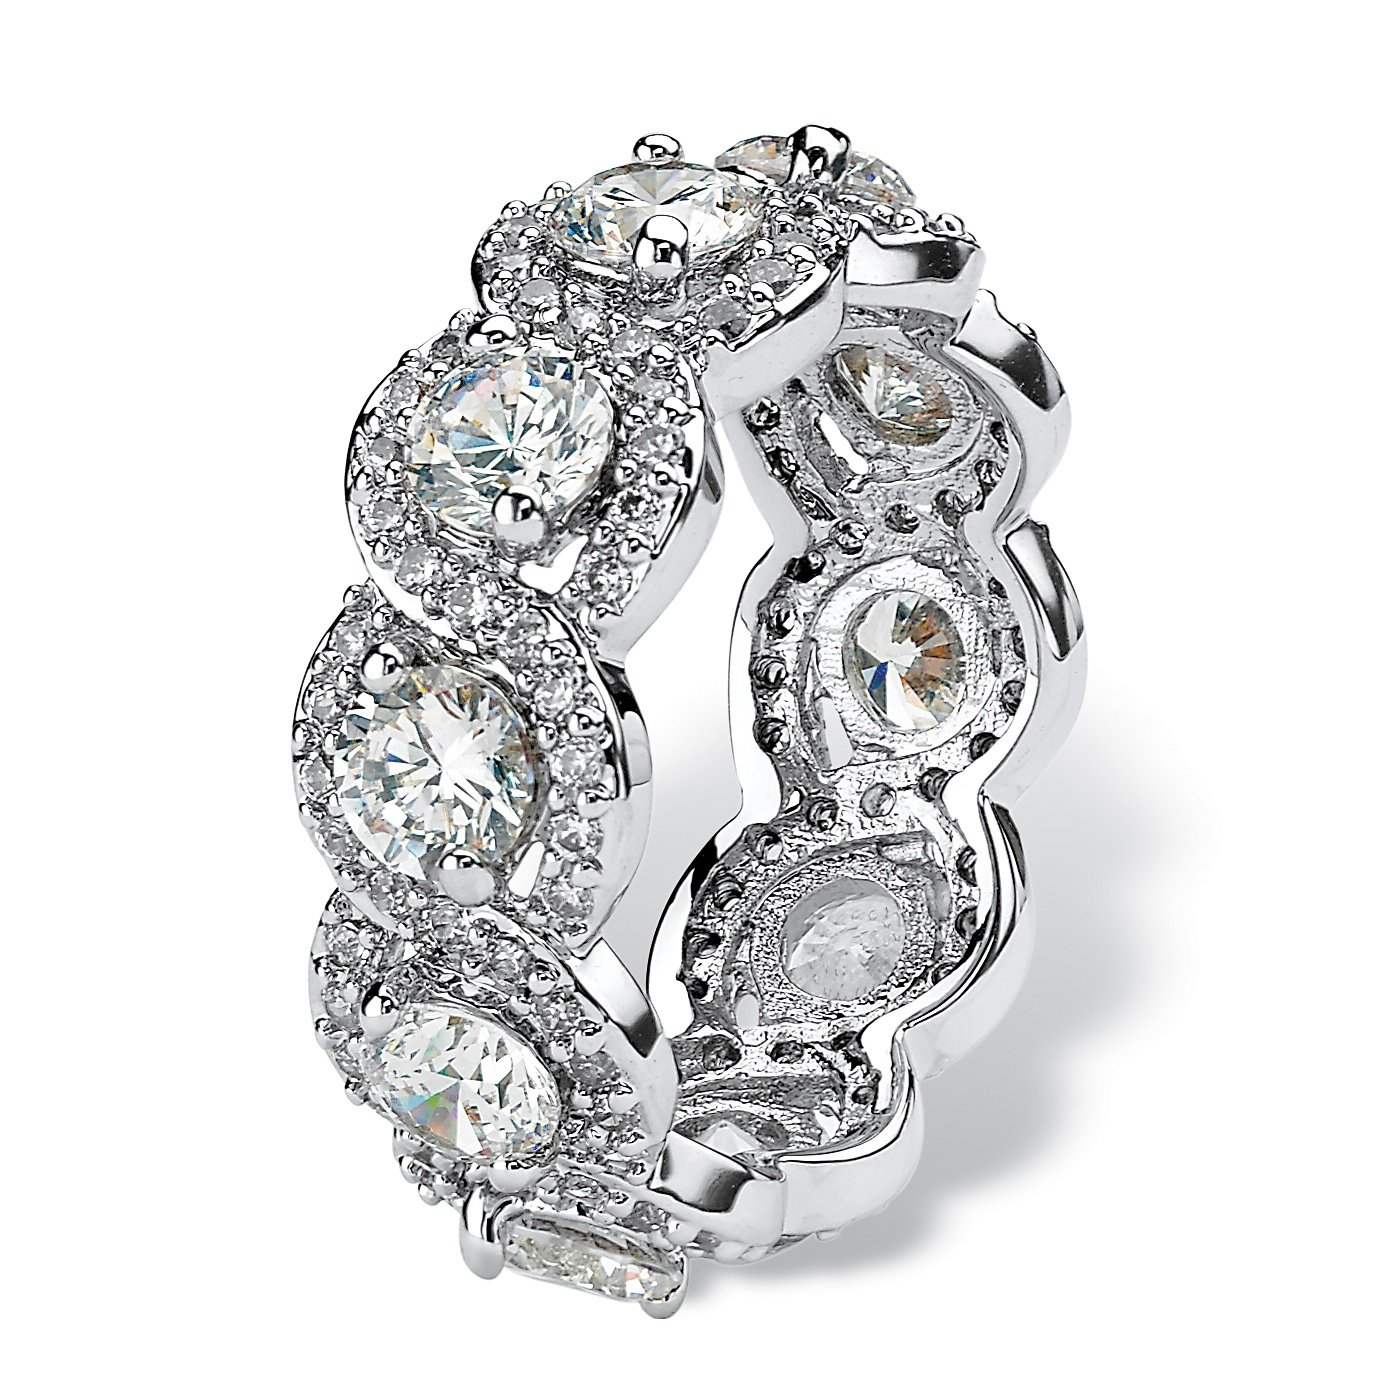 Round White Cubic Zirconia Platinum over .925 Sterling Silver Halo Crossover Eternity Ring by Seta Jewelry (Image #2)